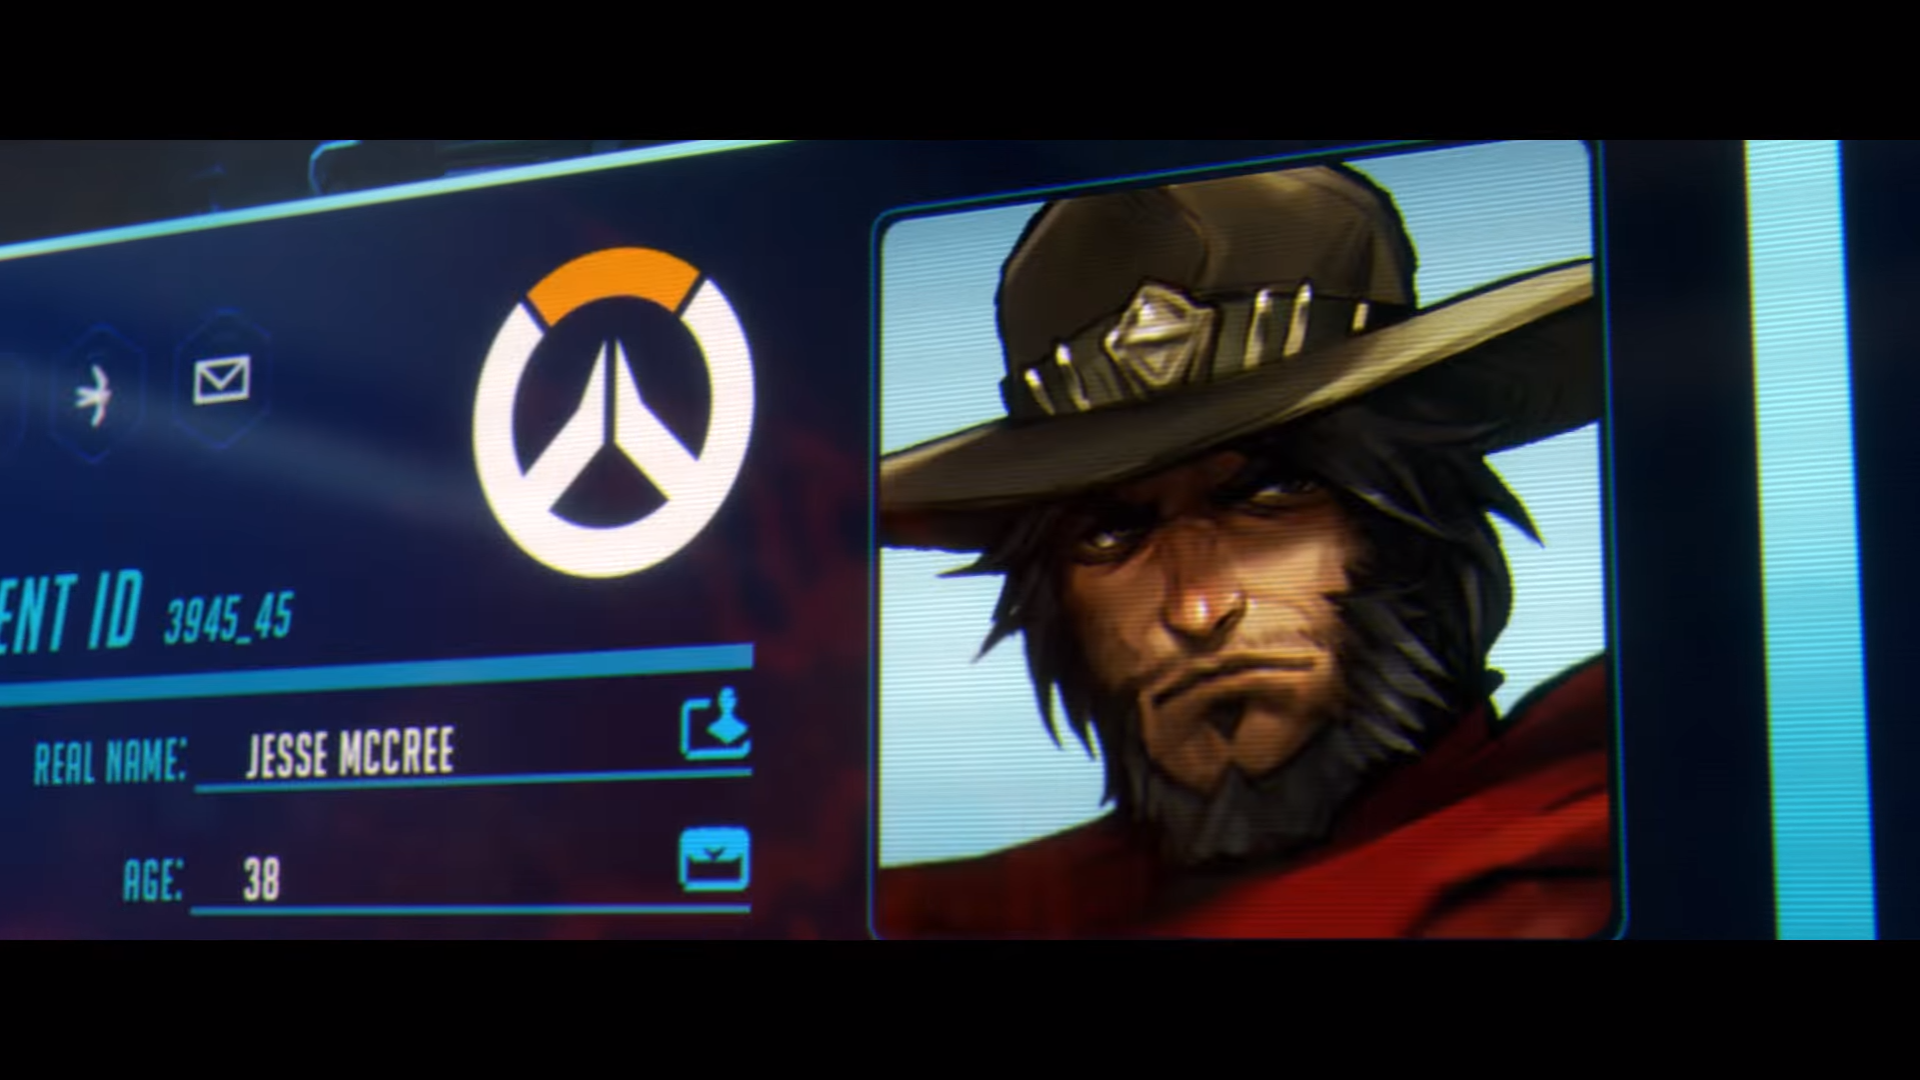 Image mei portrait png overwatch wiki fandom powered by wikia - Recall Mccree Png